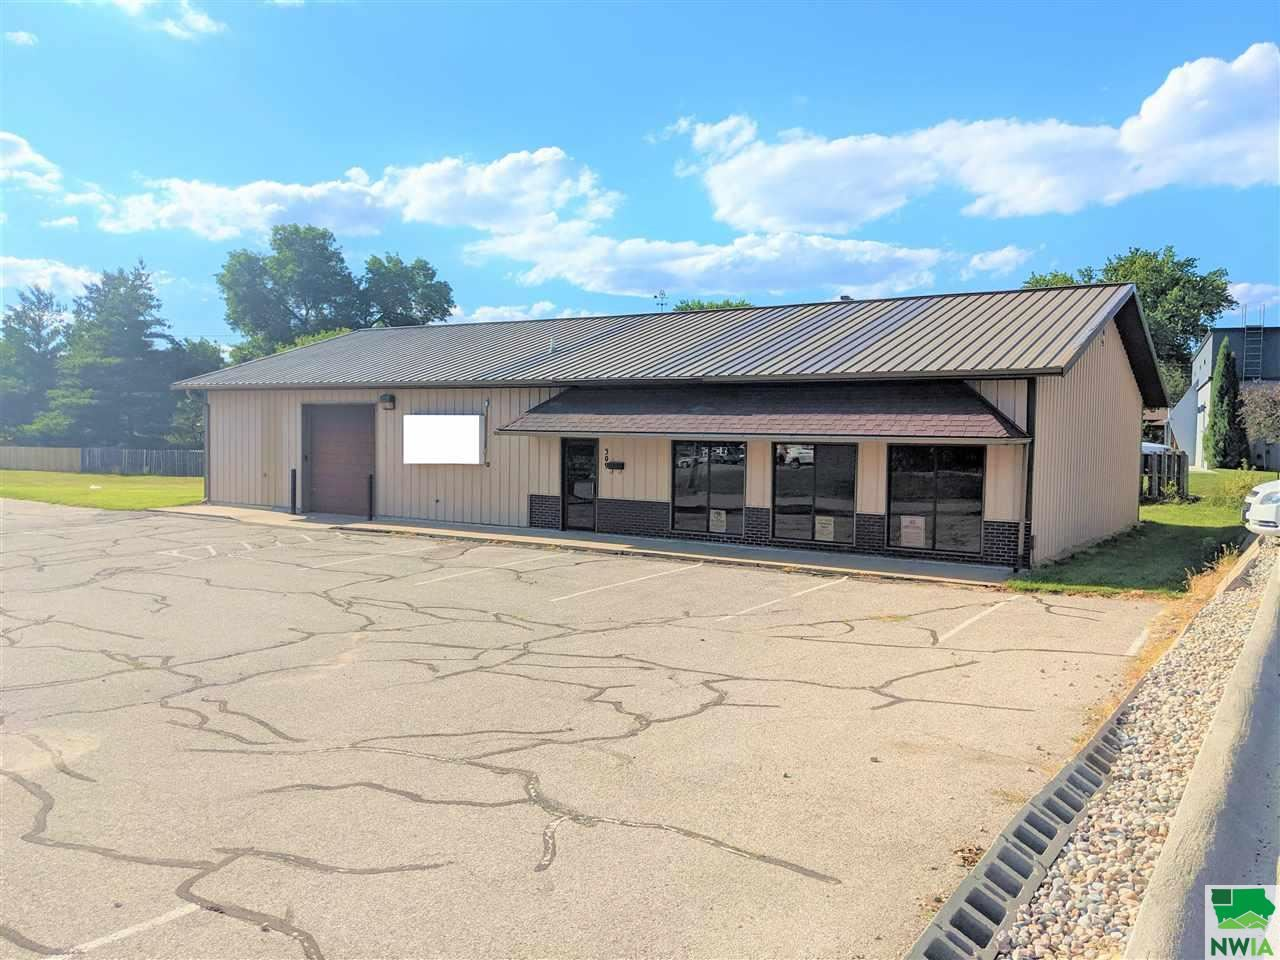 Photo for 309 W 26th St., Sioux City, IA 51104 (MLS # 813730)